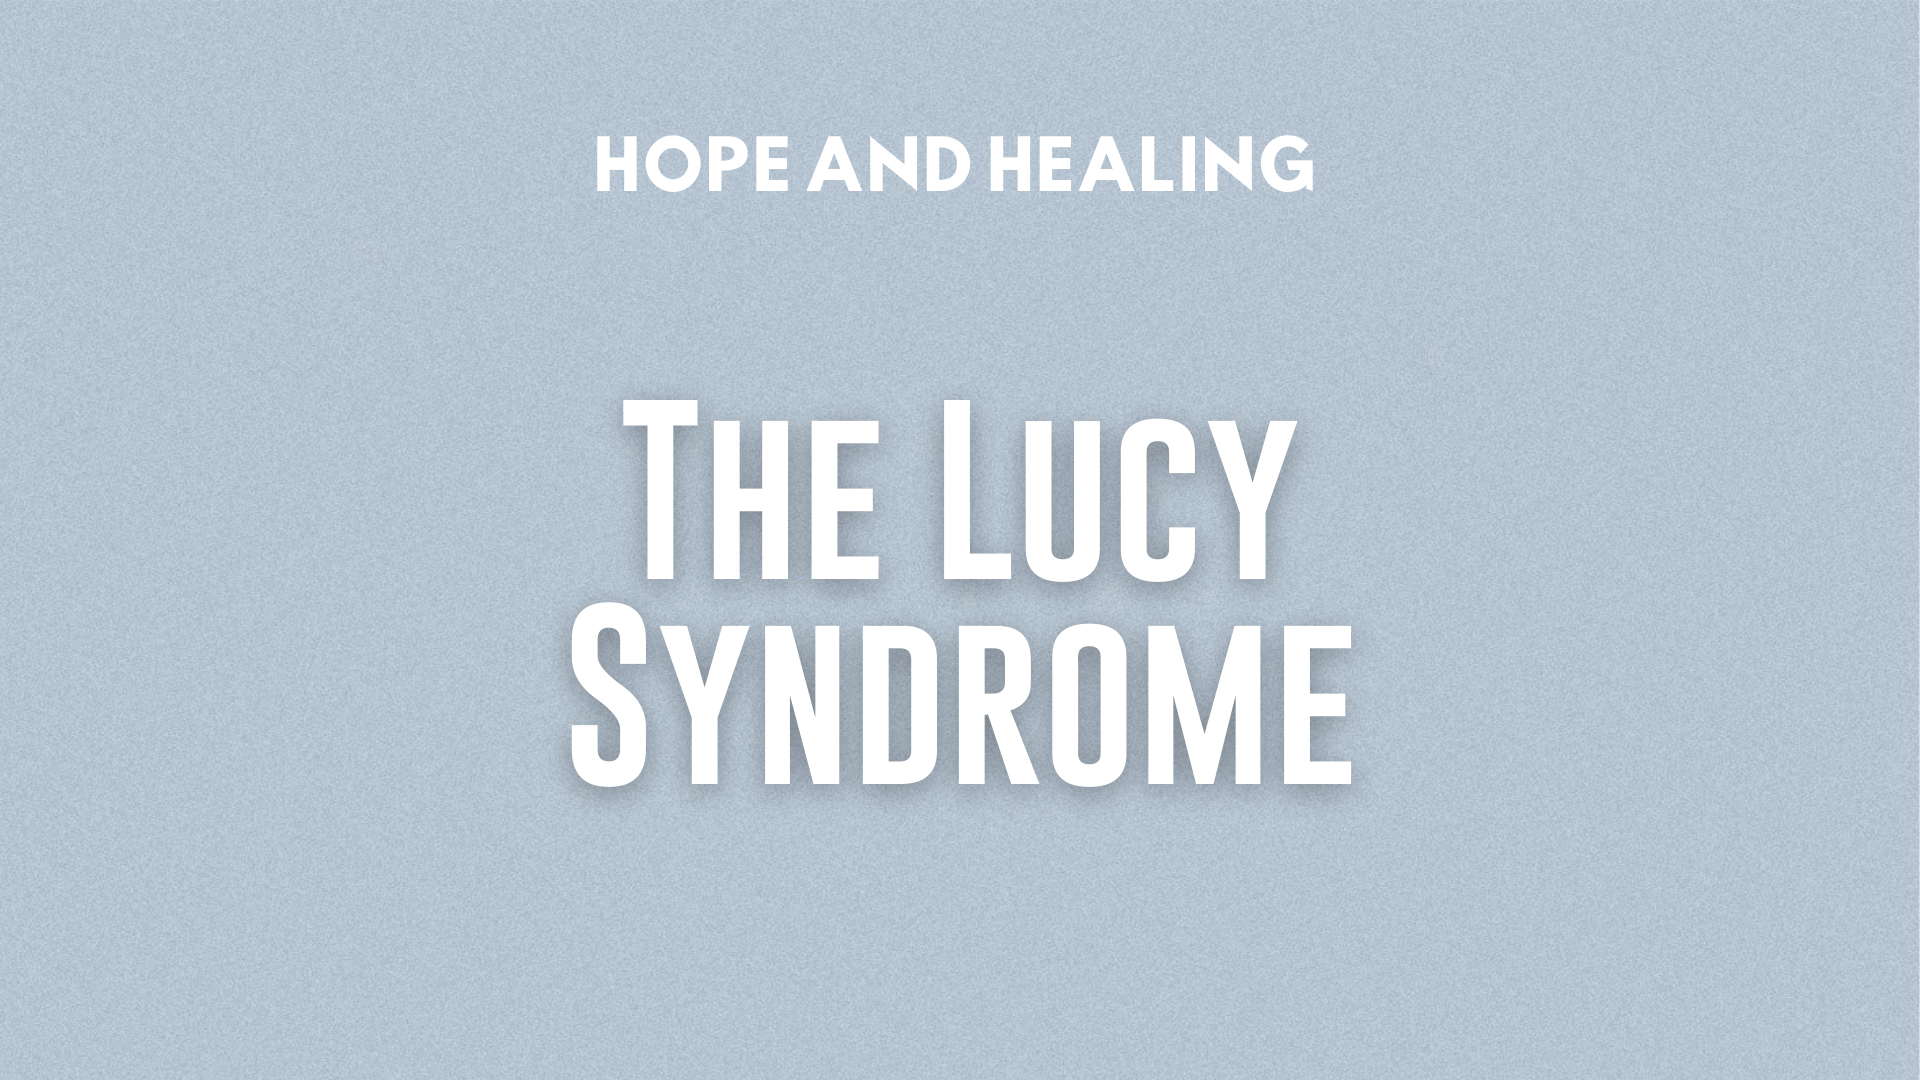 The Lucy Syndrome